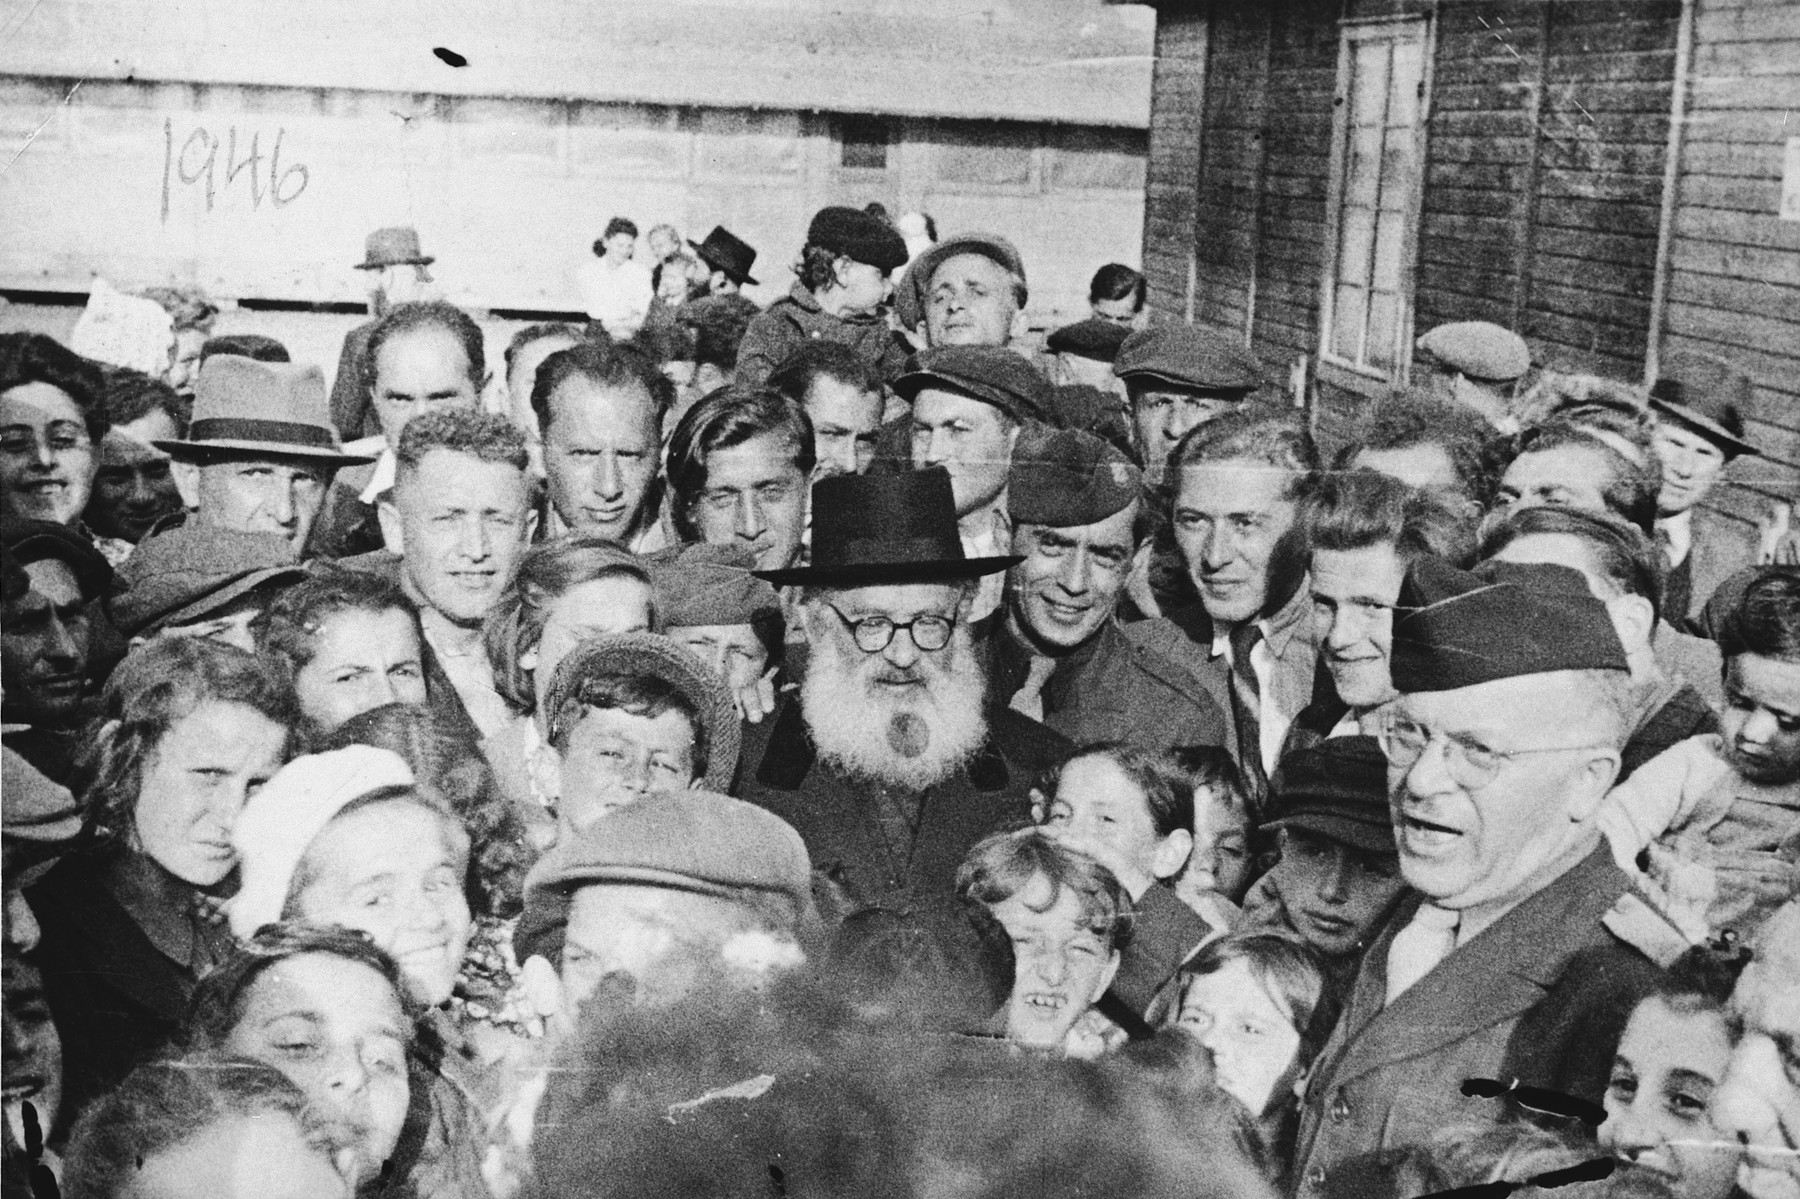 Rabbi Isaac Herzog pays an official visit to the Neu Freimann displaced person's camp.  Among the children crowded around him is Lova Warszawczyk.